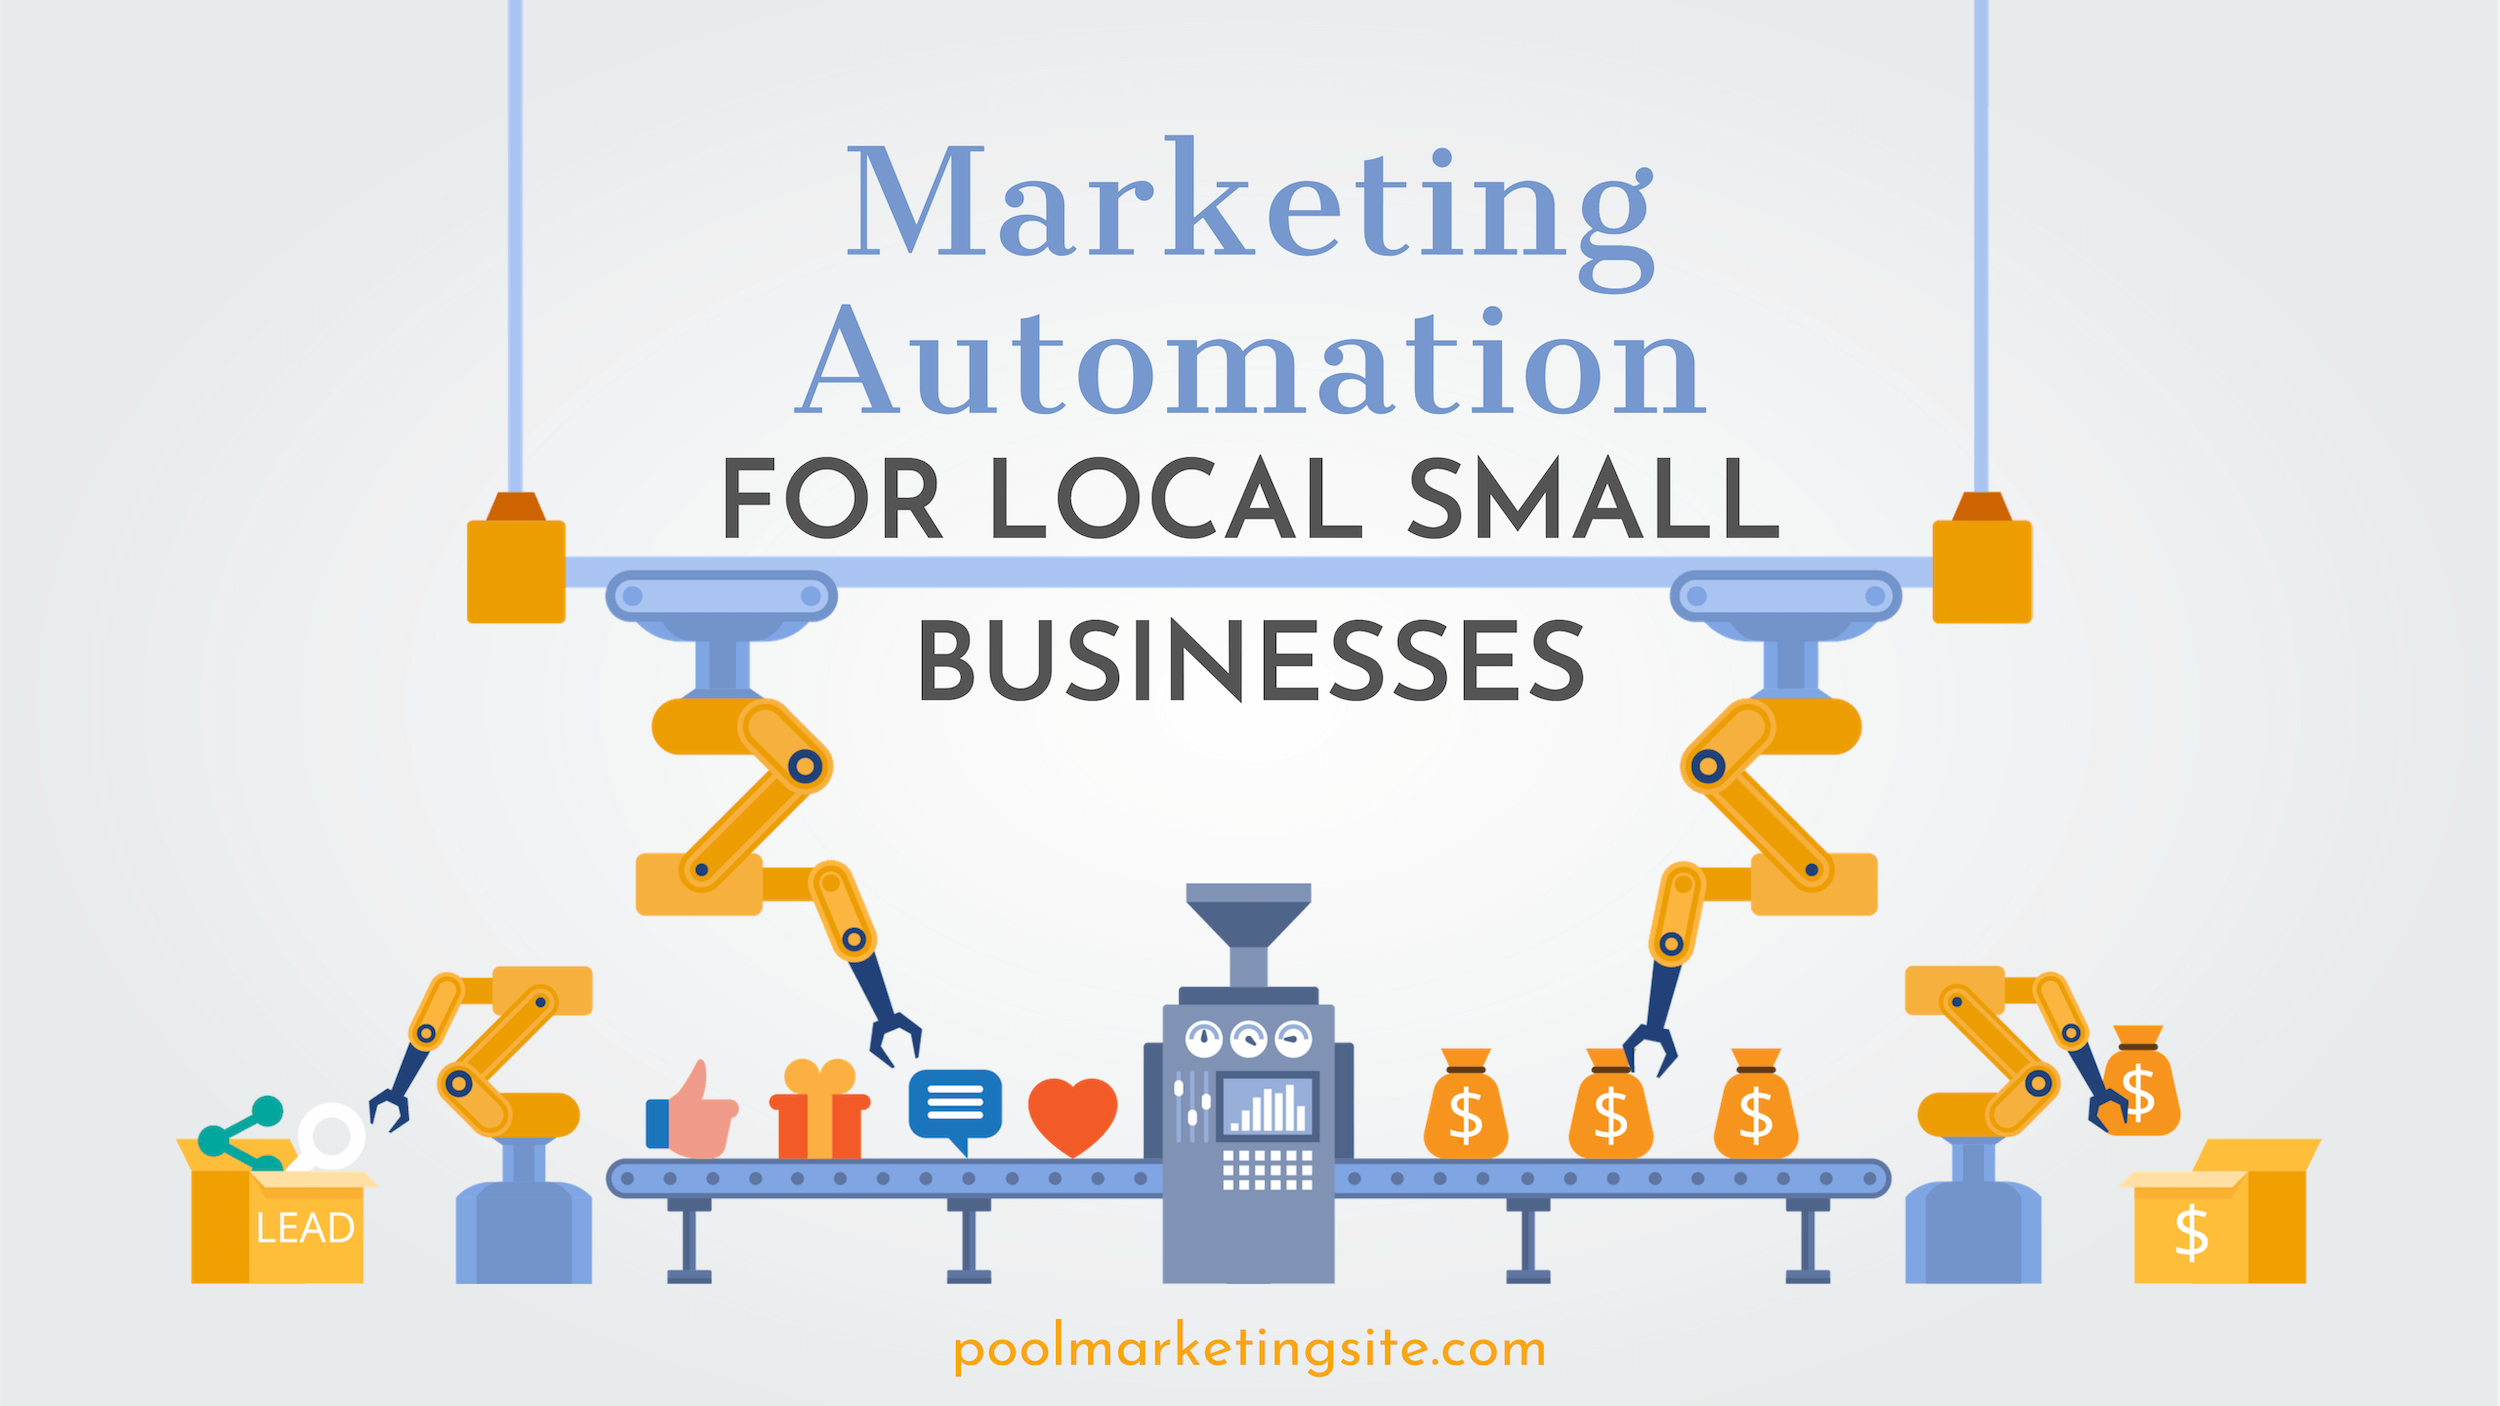 Marketing Automation for Local Small Businesses